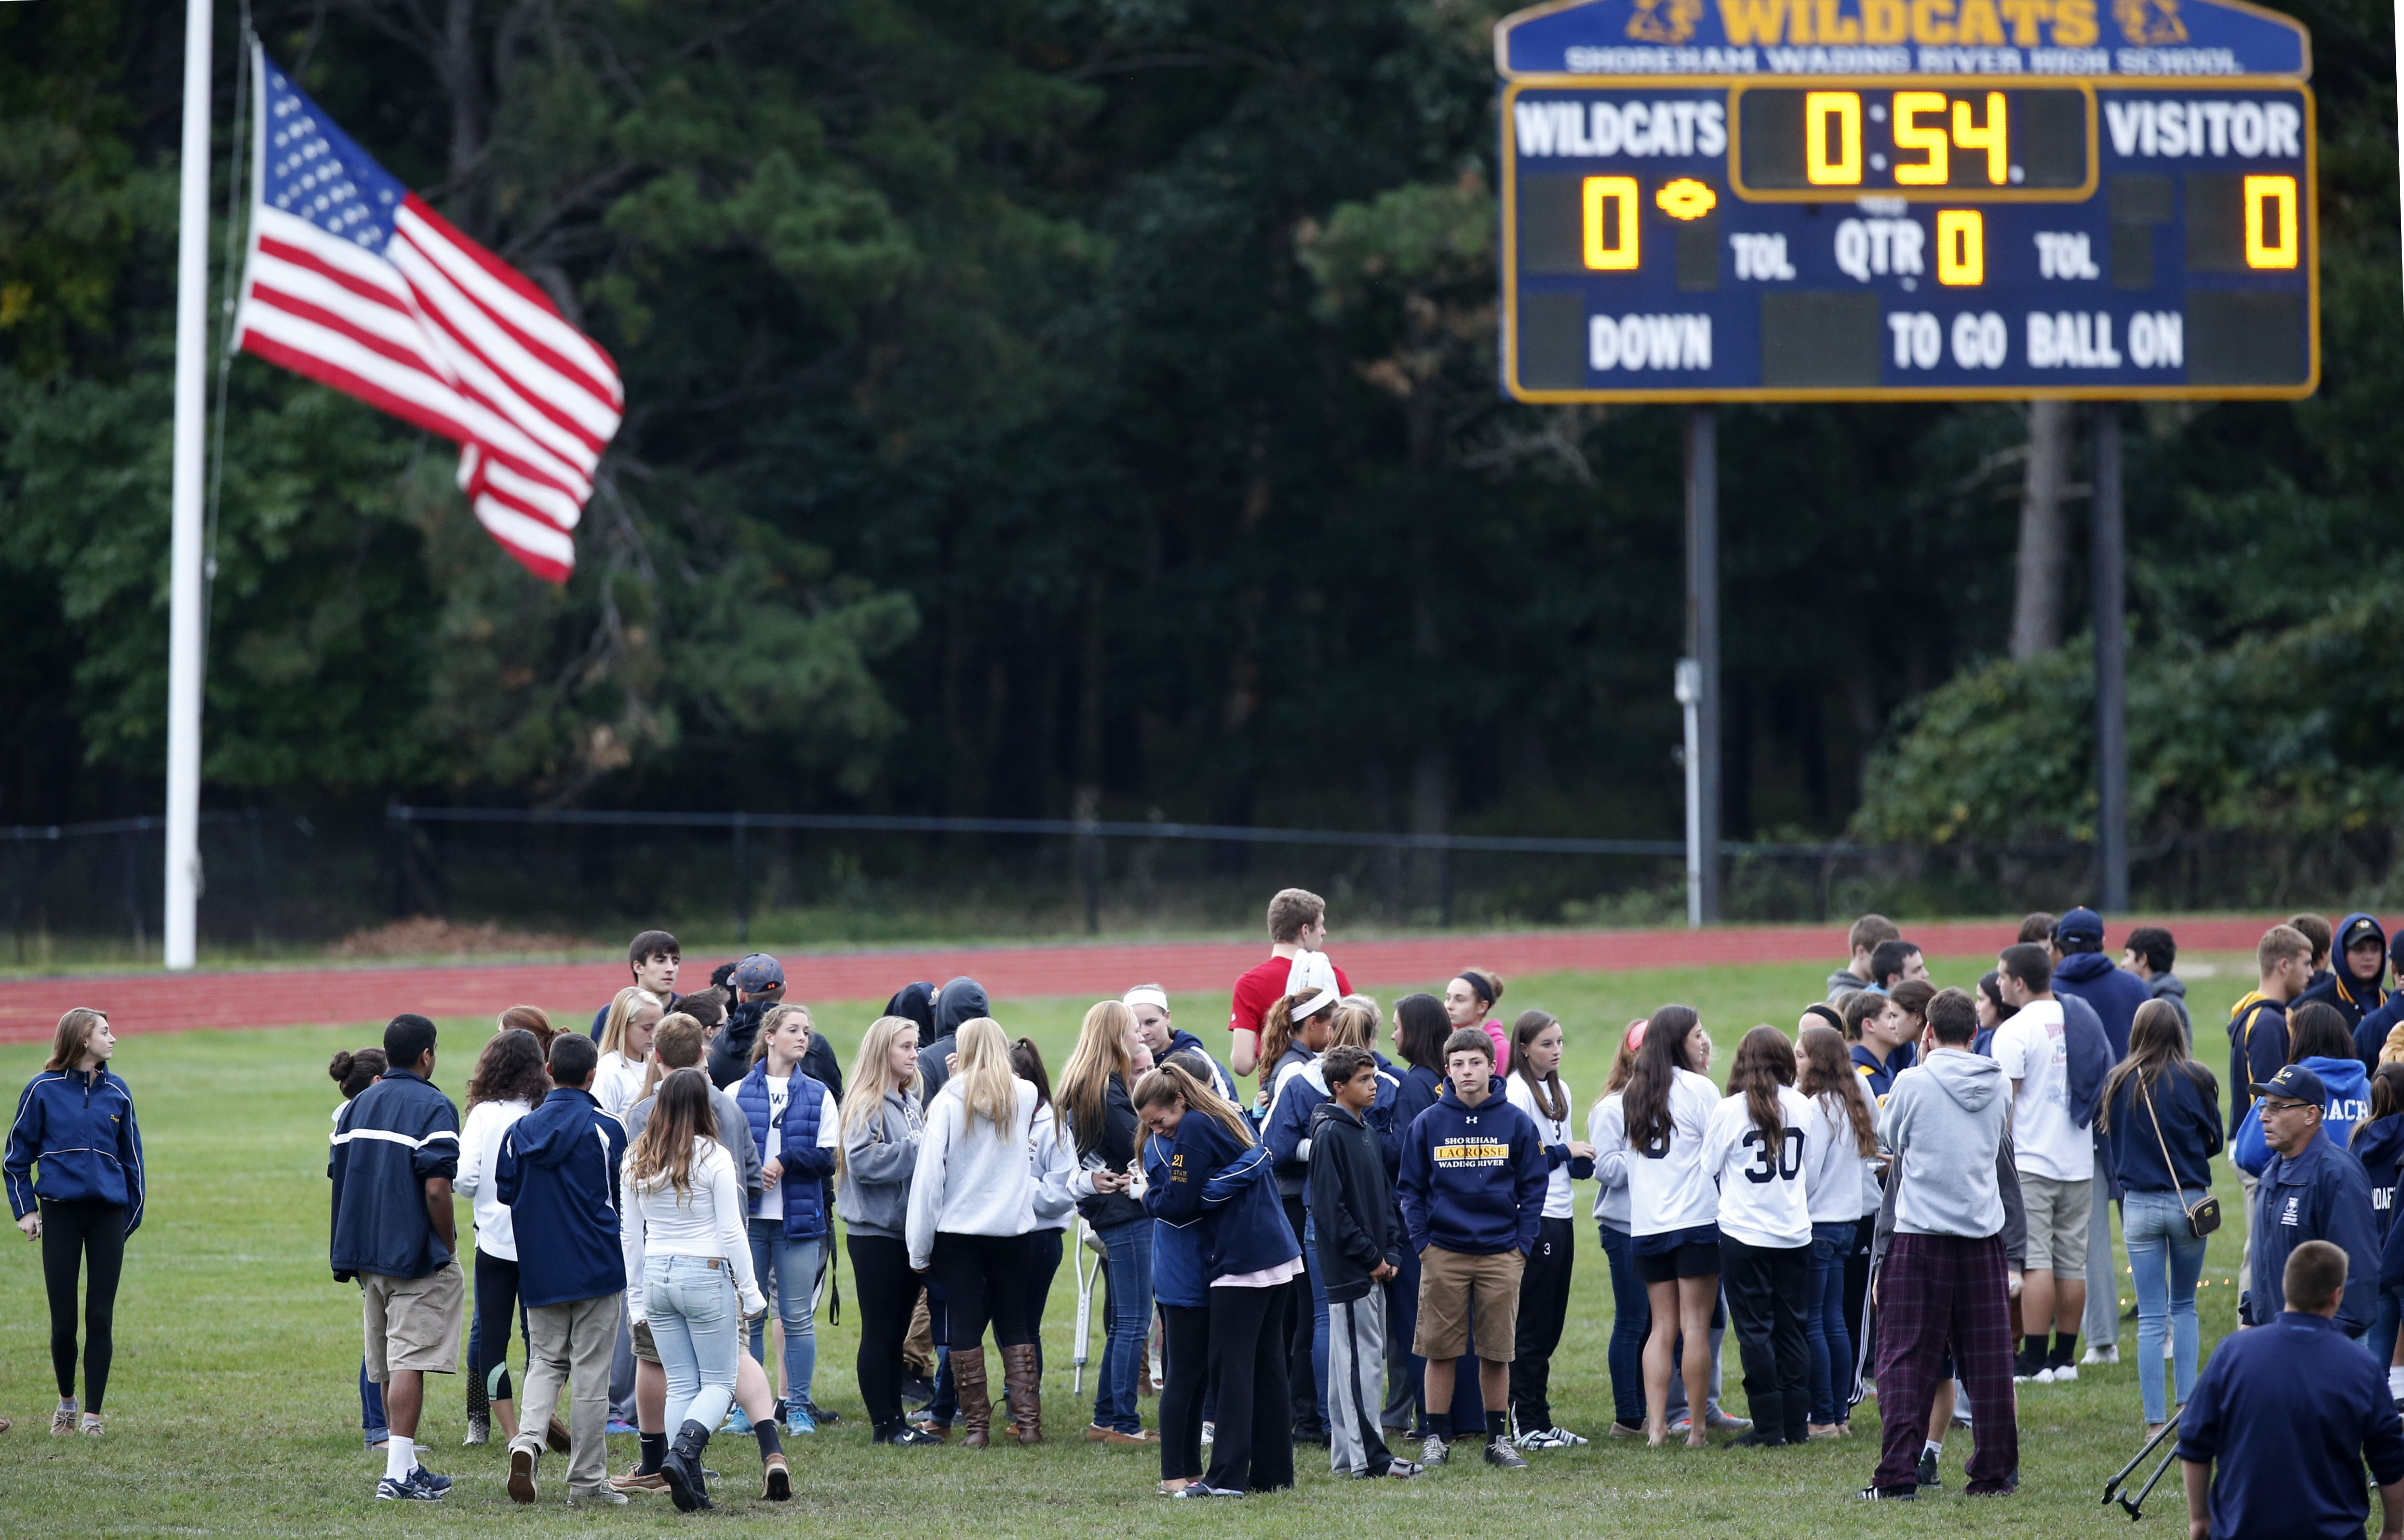 People walk on the football field at Shoreham Wading River High School in Shoreham, N.Y., Thursday, Oct. 2, 2014, after a vigil for 16-year-old varsity football player Tom Cutinella, who died Wednesday night after a fatal football collision at an away game . (AP Photo/Kathy Willens)